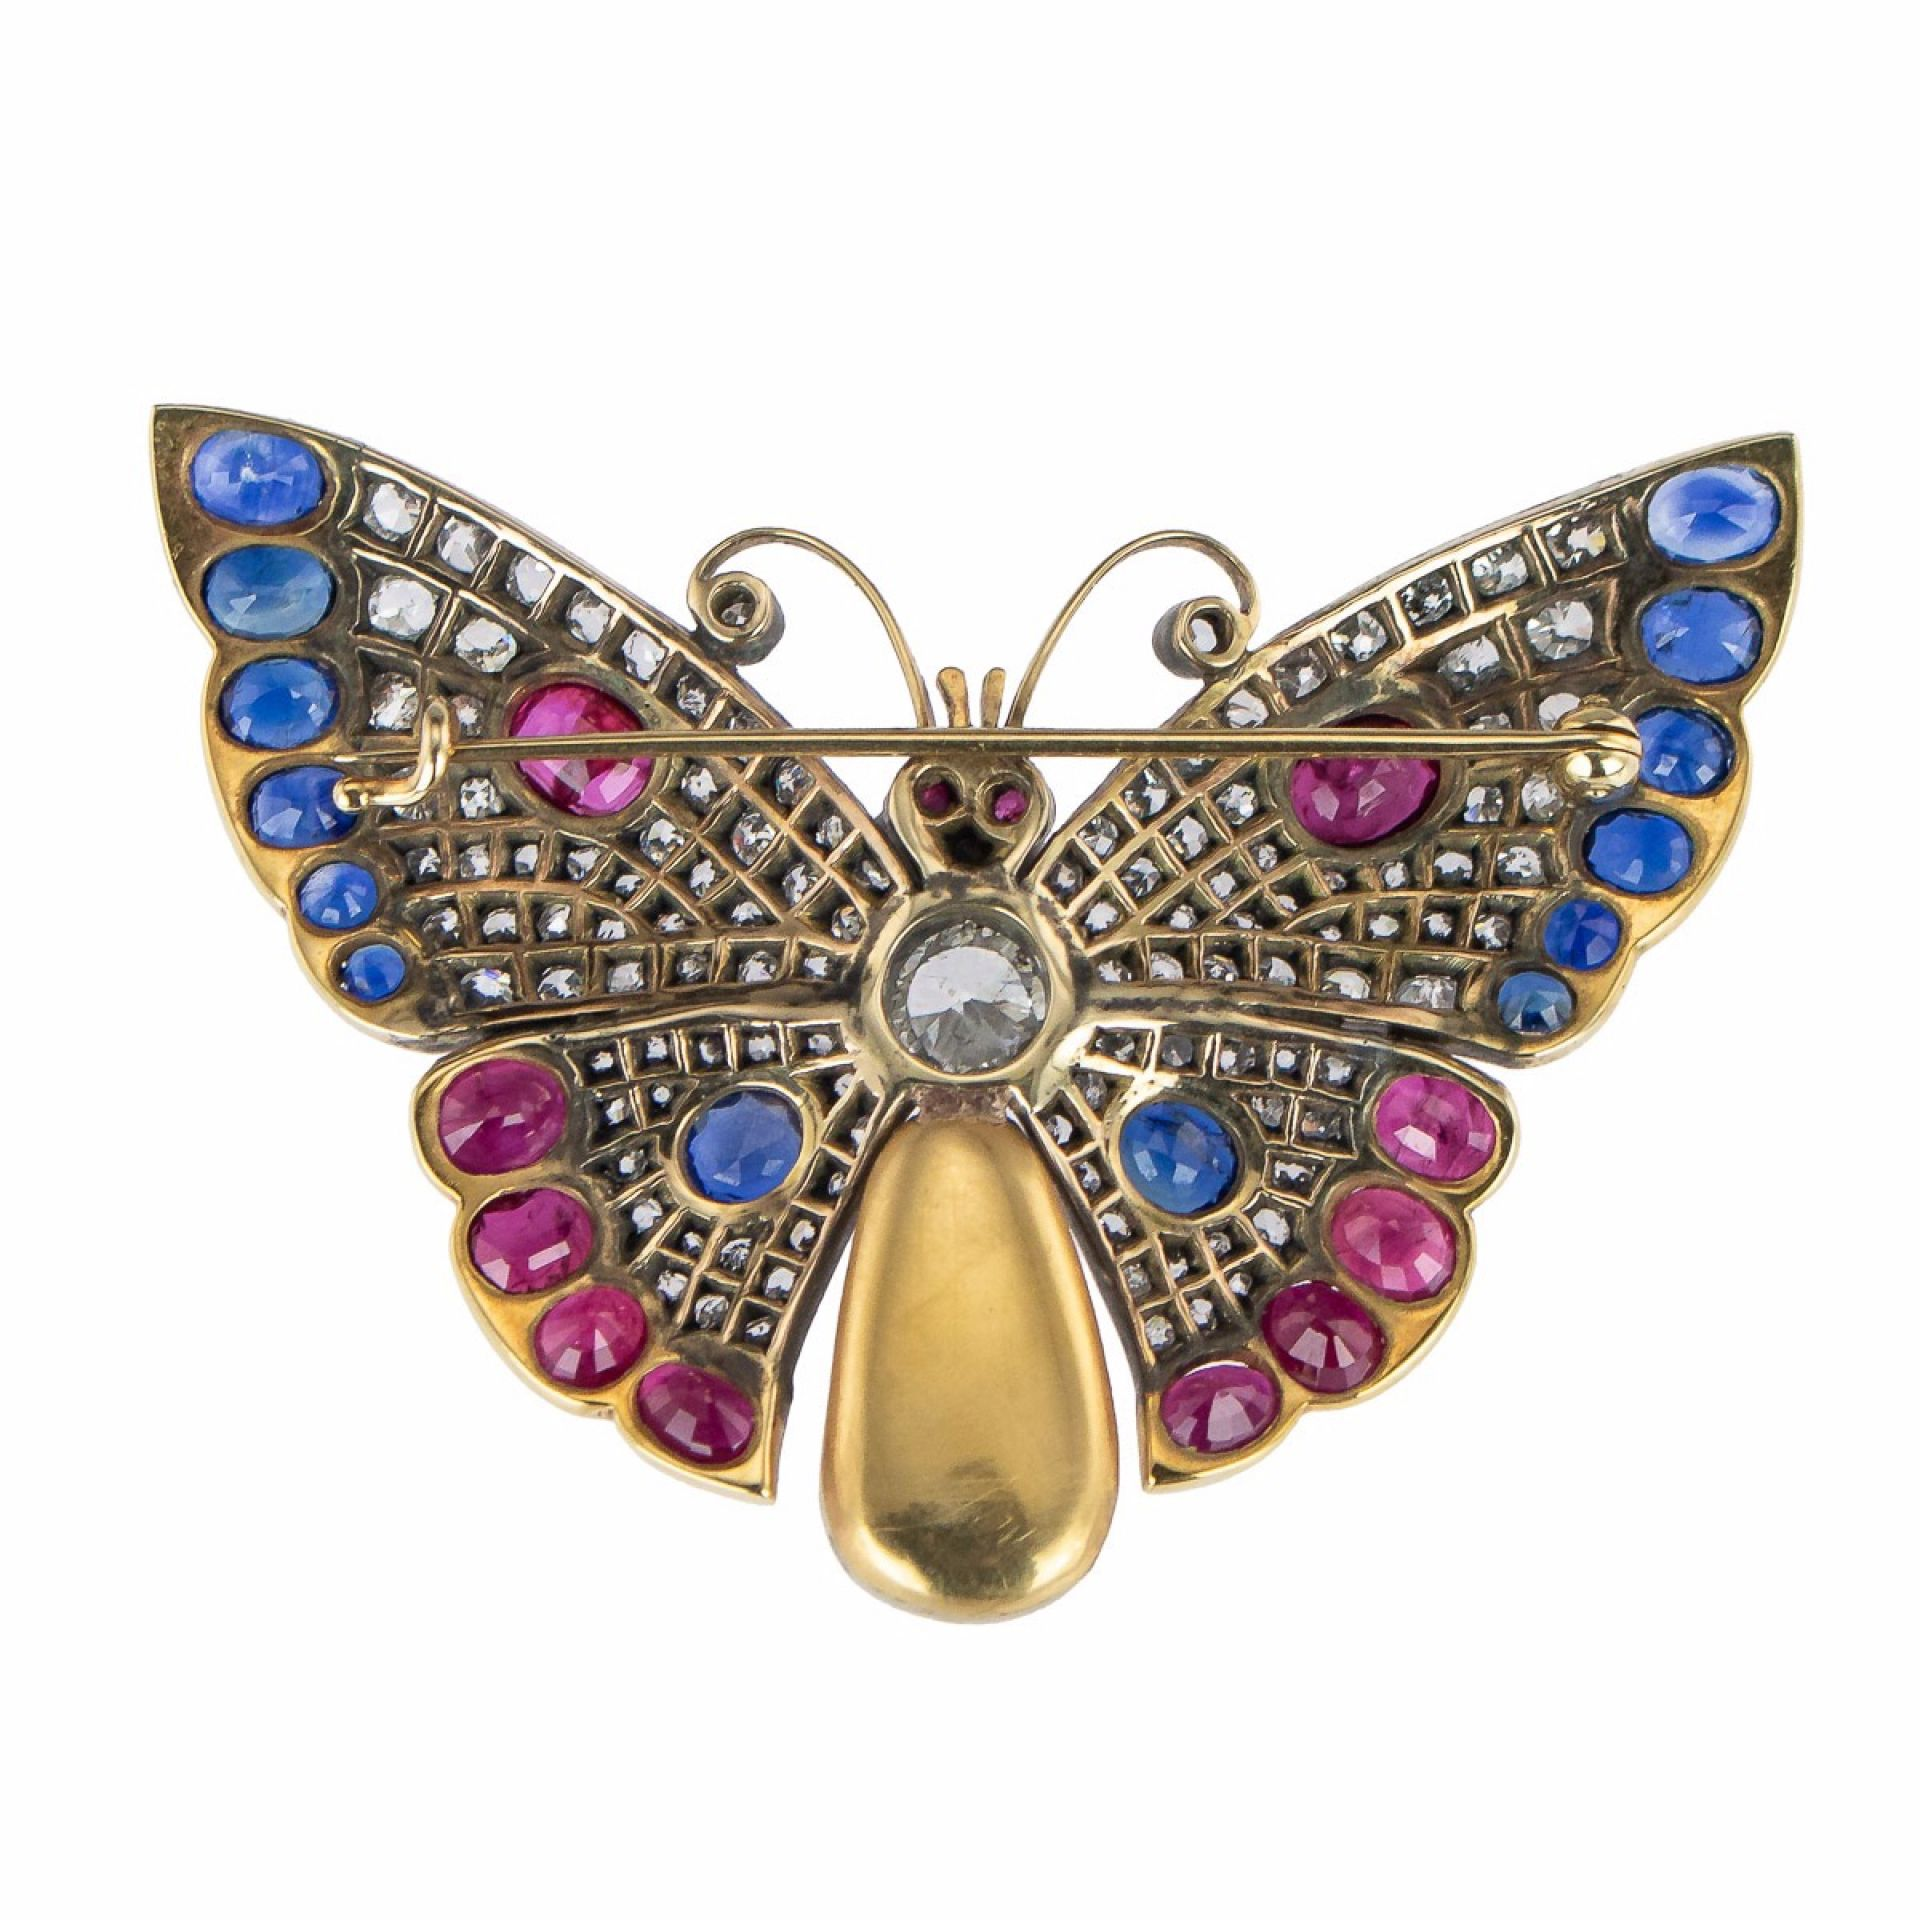 EXCEPTIONAL DIAMOND, SAPPHIRE, RUBY & PEARL SET 18K GOLD BUTTERFLY BROOCH